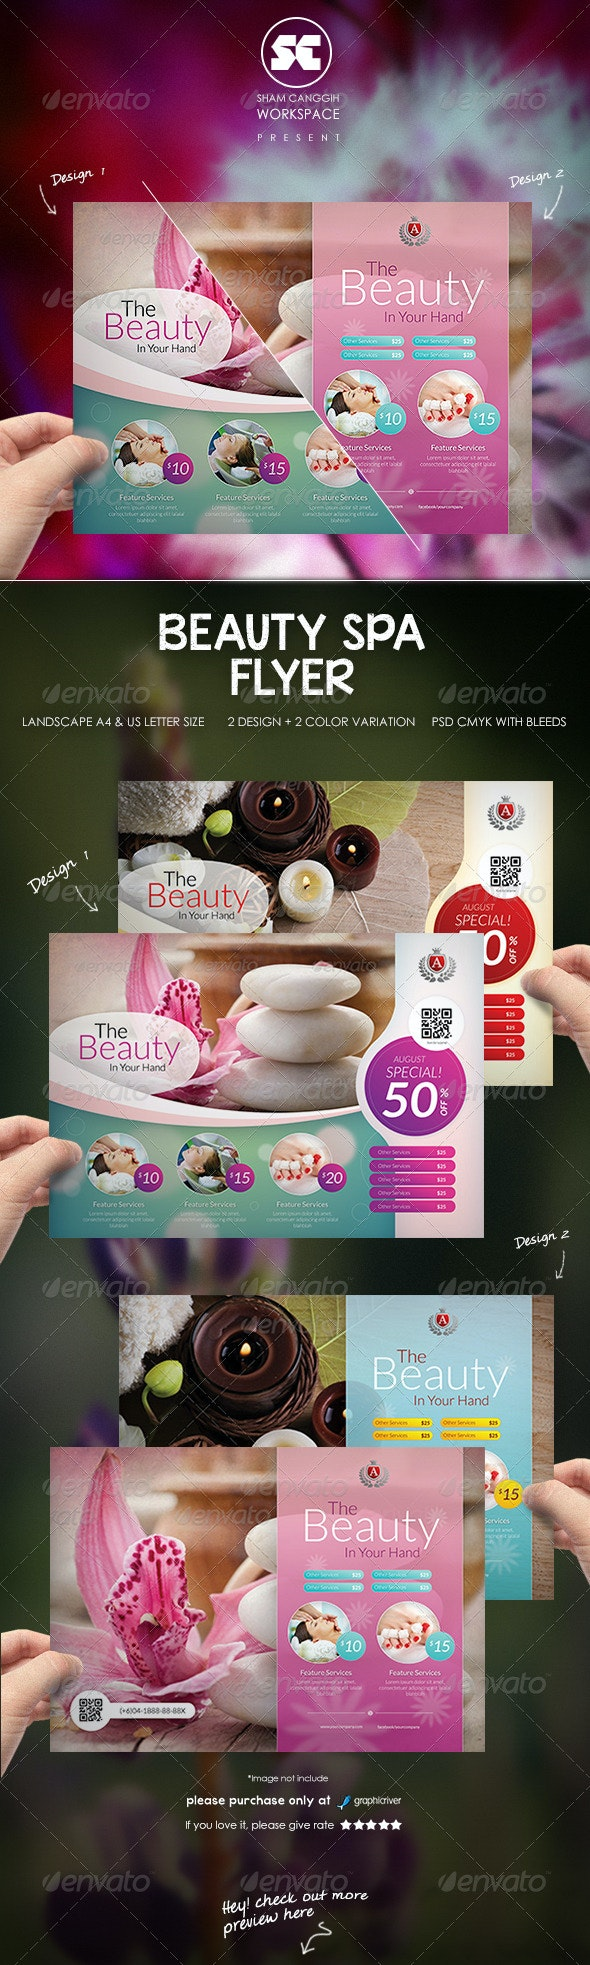 Beauty Spa Flyer - Corporate Flyers